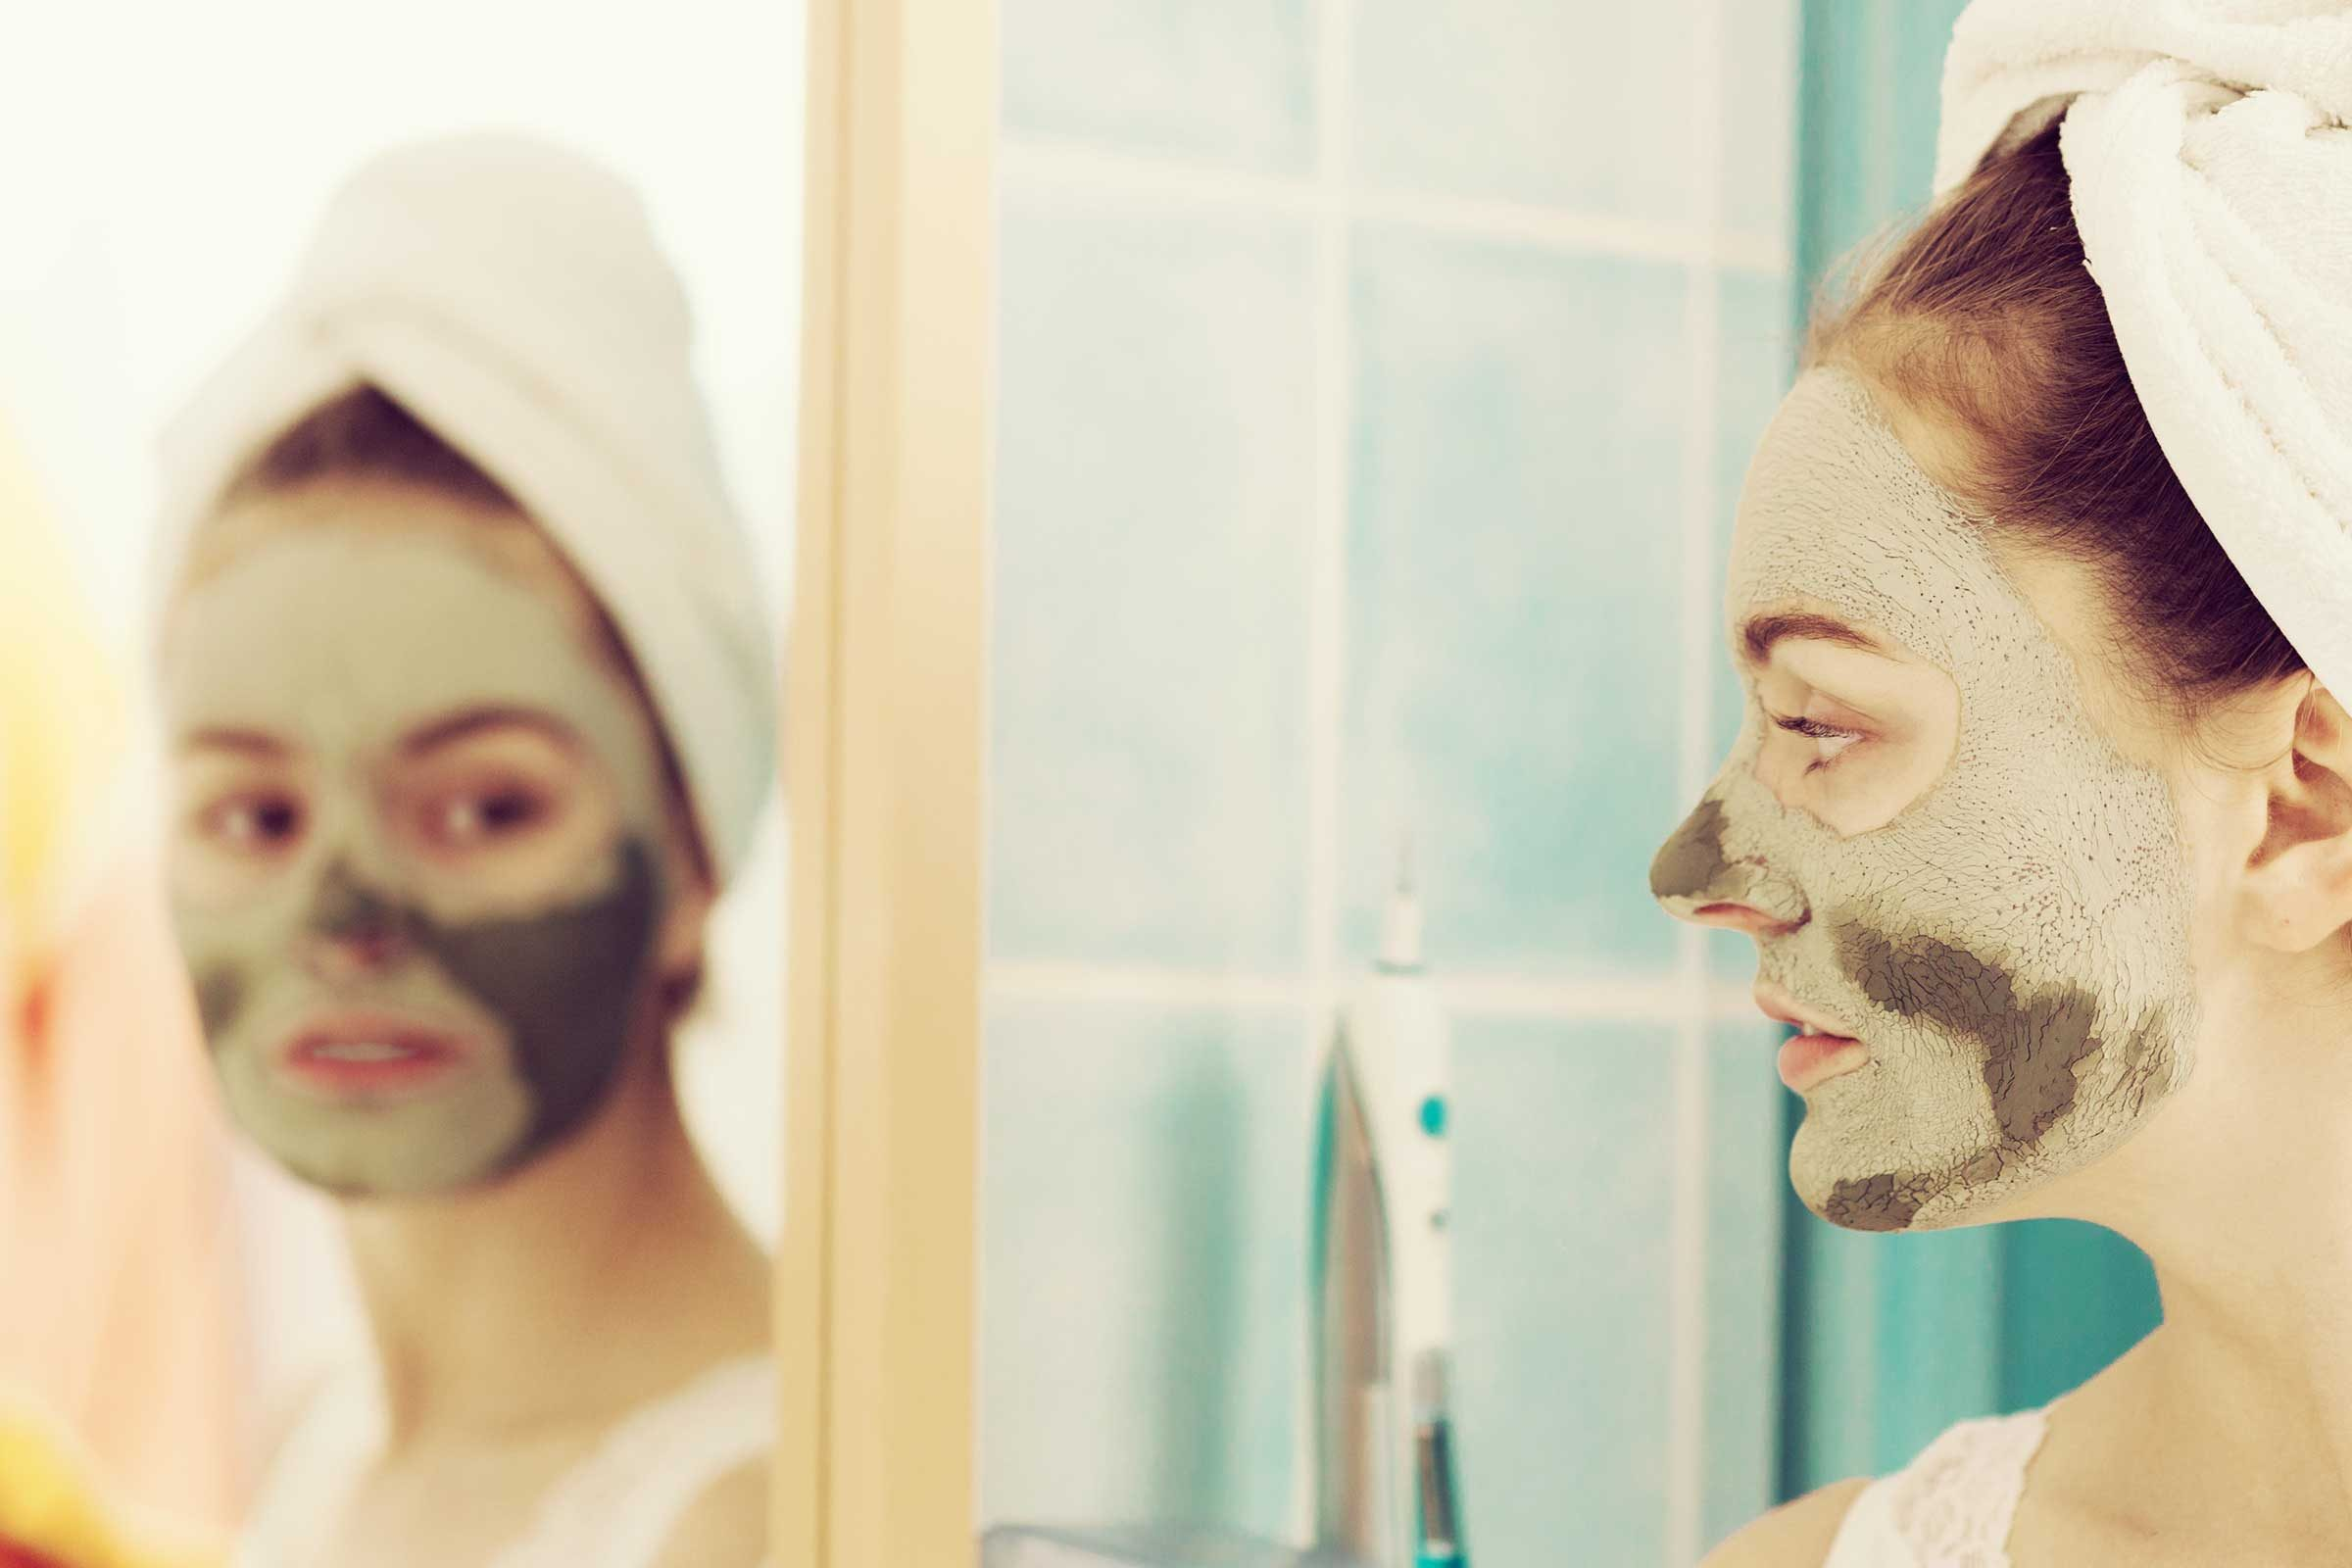 Rules of skin care in 20 years